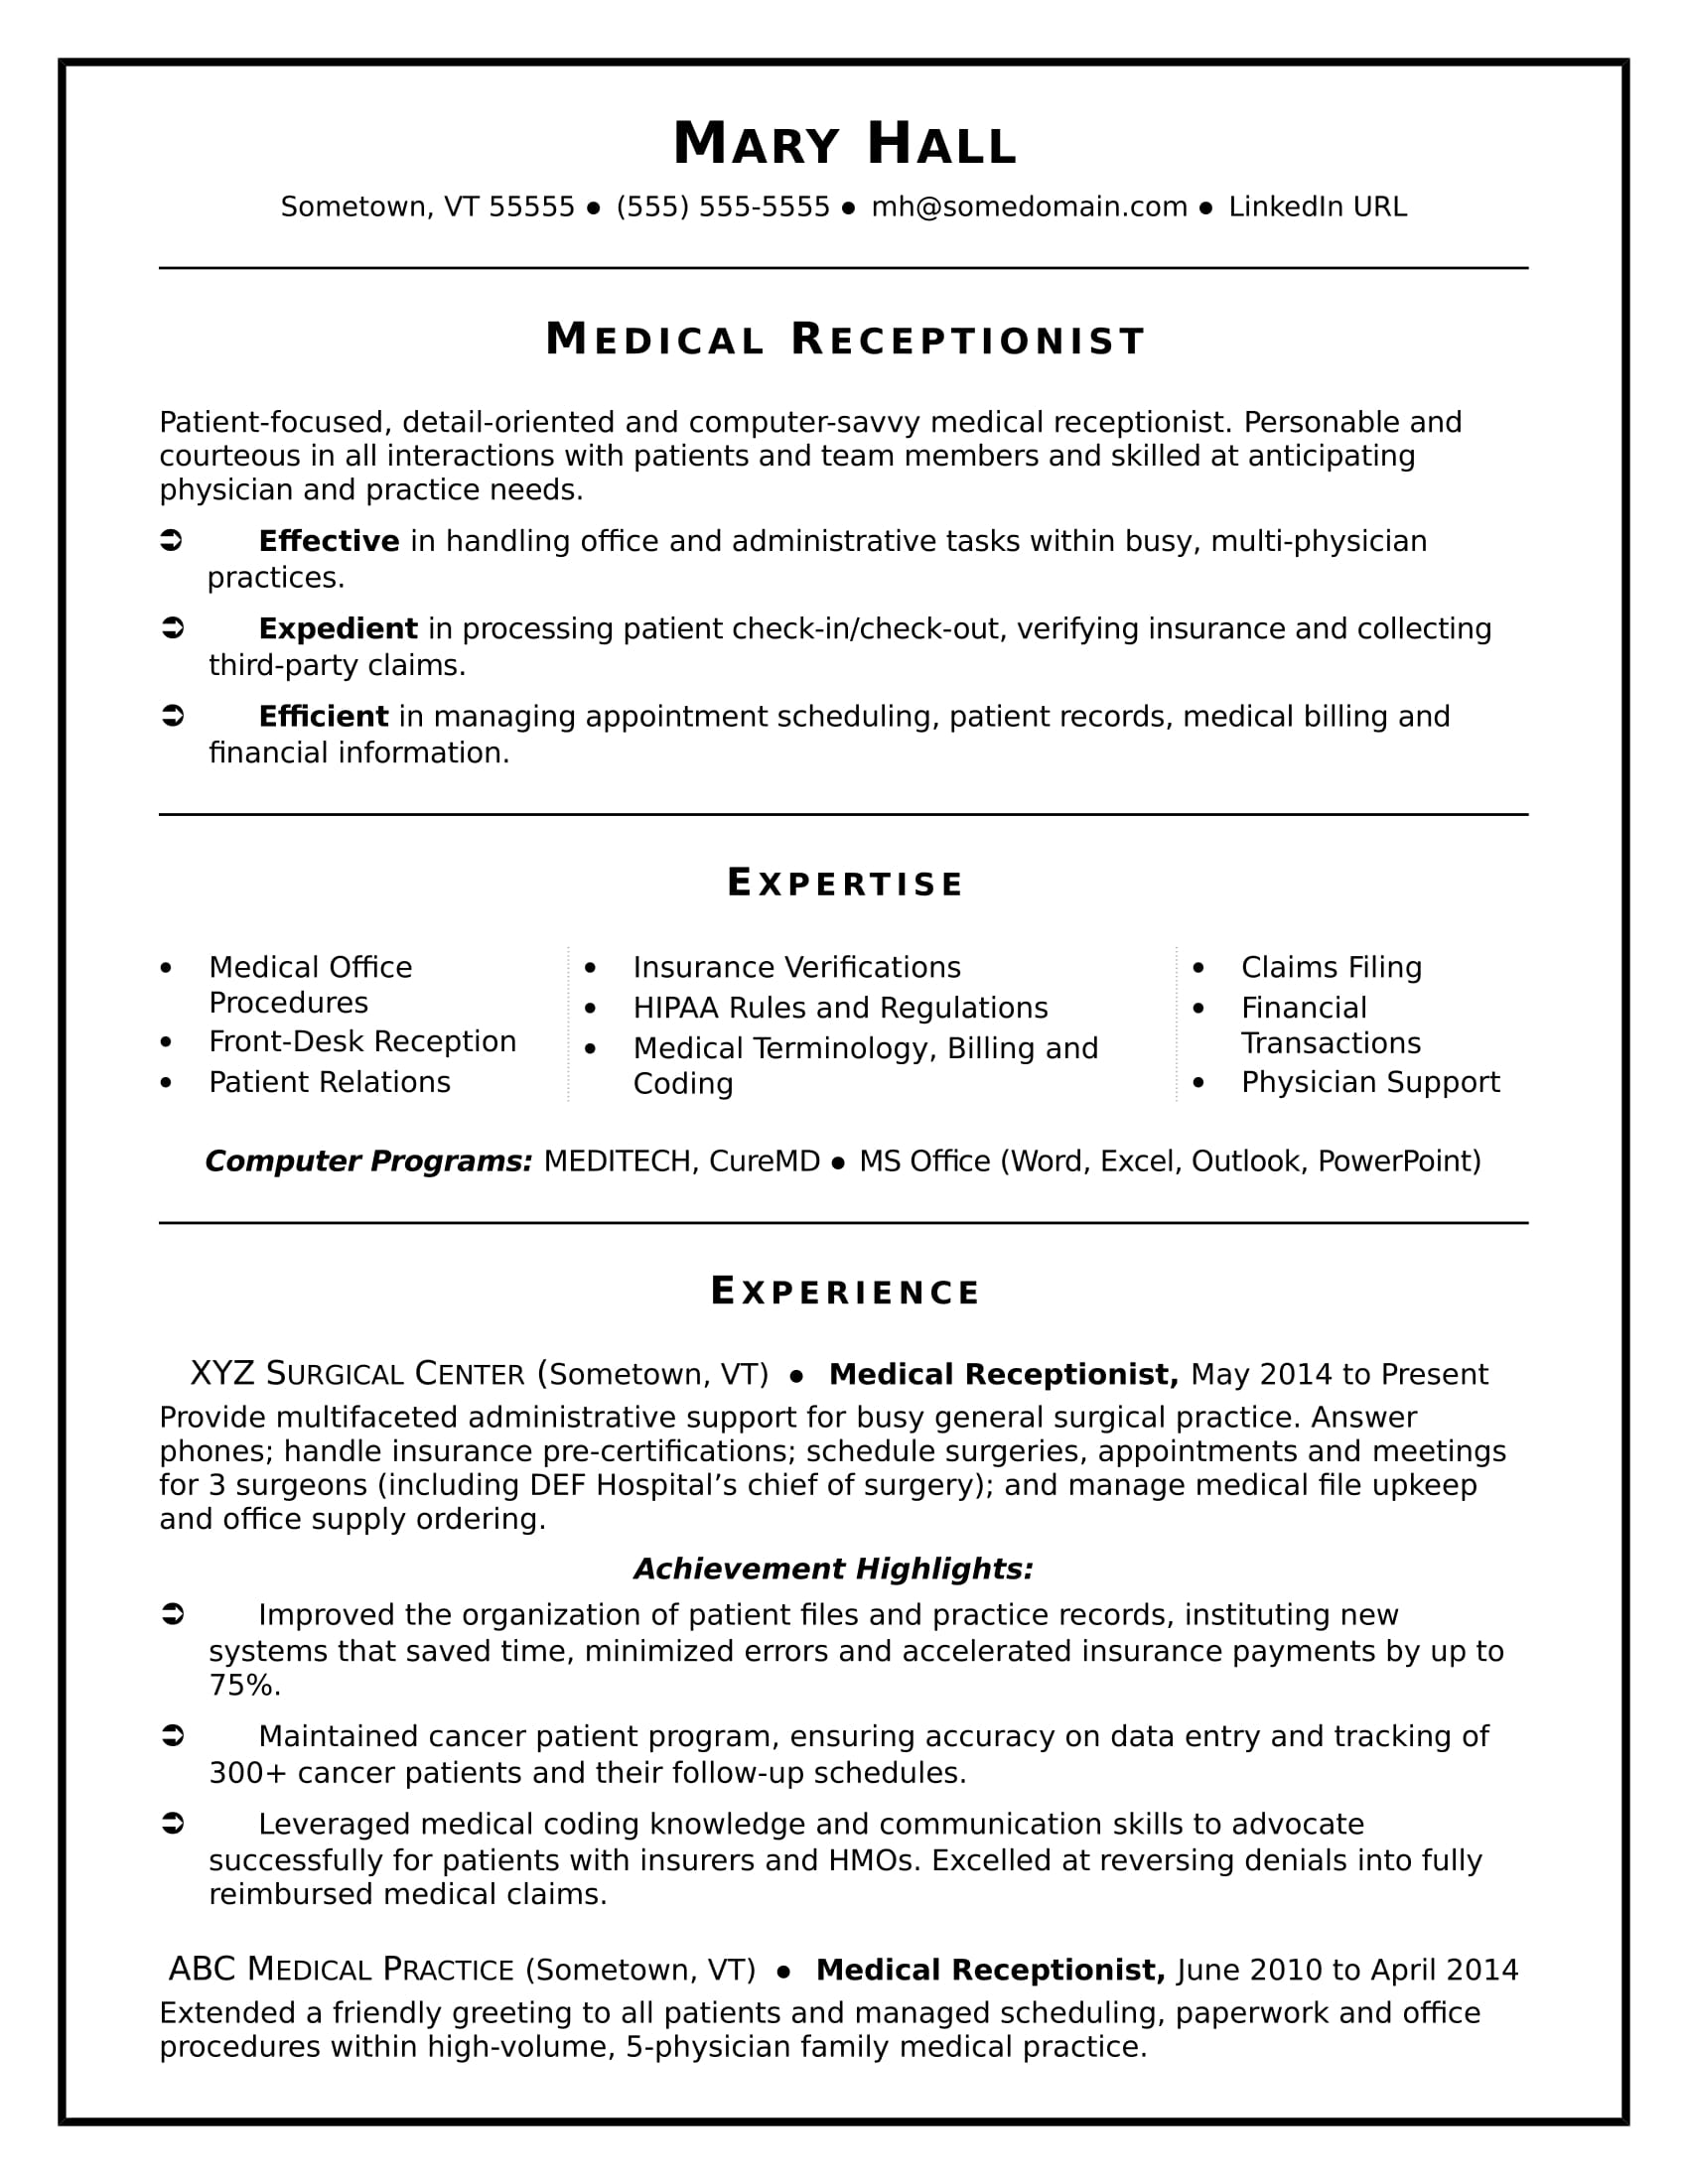 Medical Receptionist Resume Sample | Monster.com